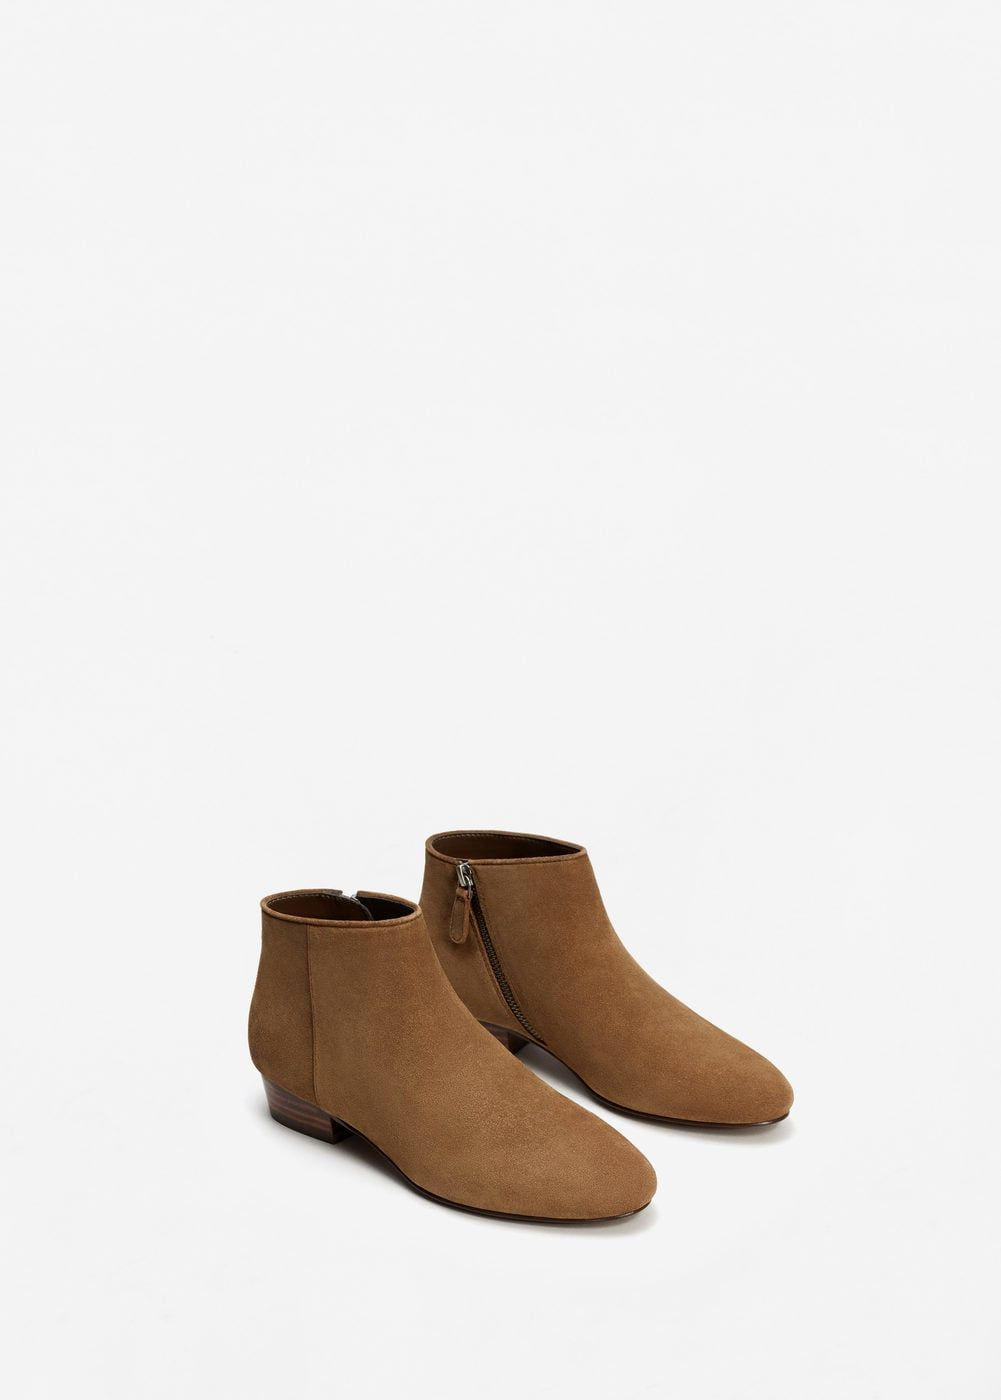 de7423c45940 Suede ankle boots - f foBoots and booties Women